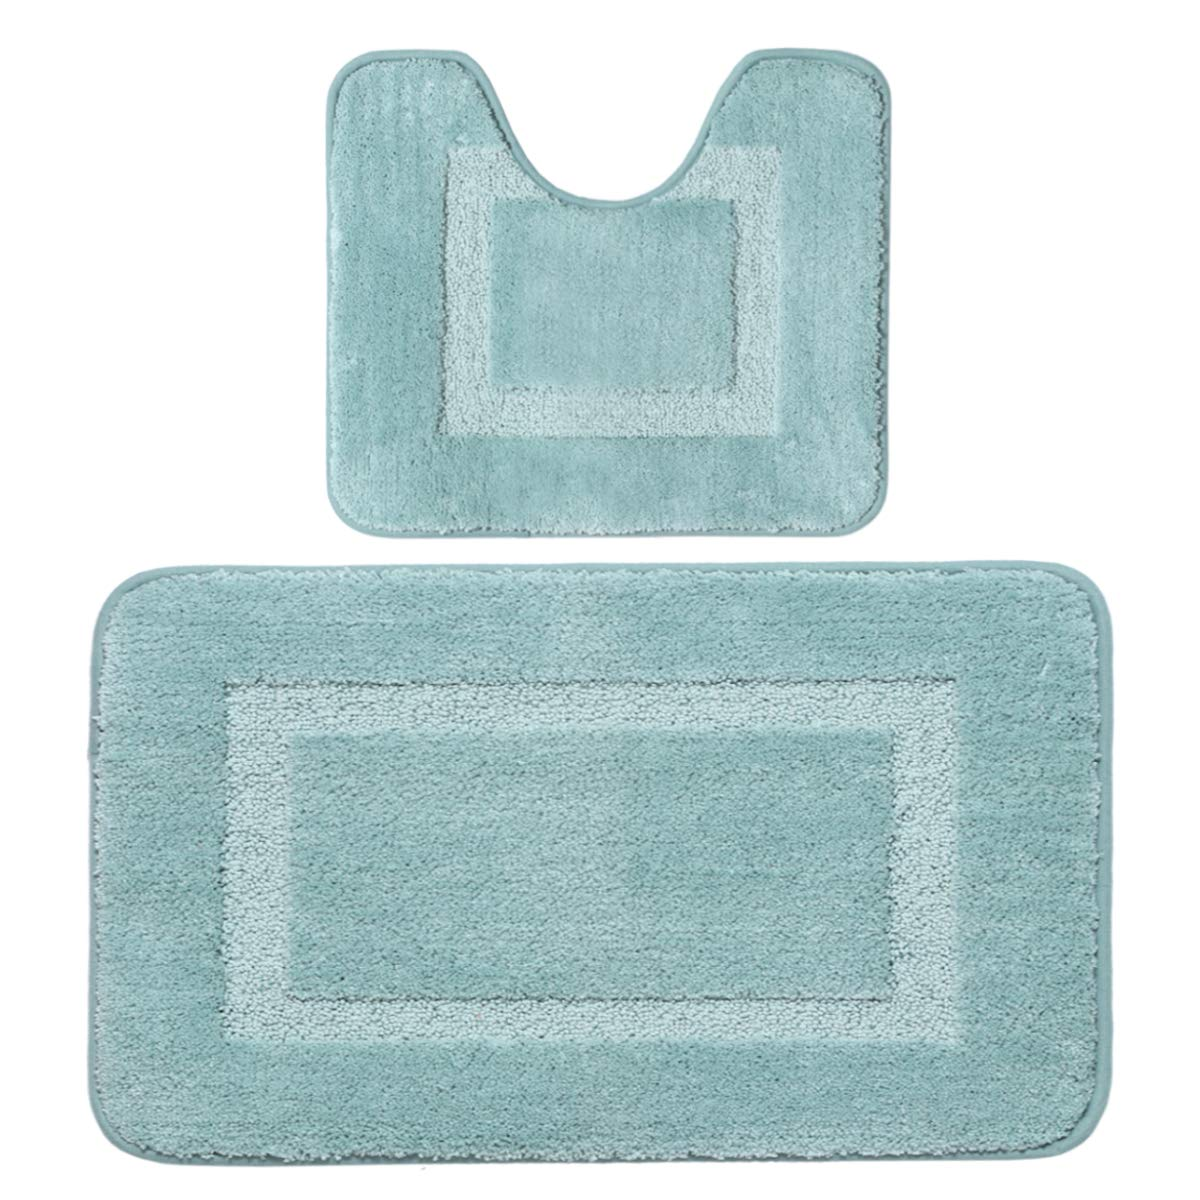 Flamingo P Hand Tufted Heavy Weight Construction Bathroom Rugs 2 Pieces Super Soft 17x 24 Eggshell Blue Plush /& Absorbent Non Slip TPR Rubber Bath Mat for Kitchen Bedroom